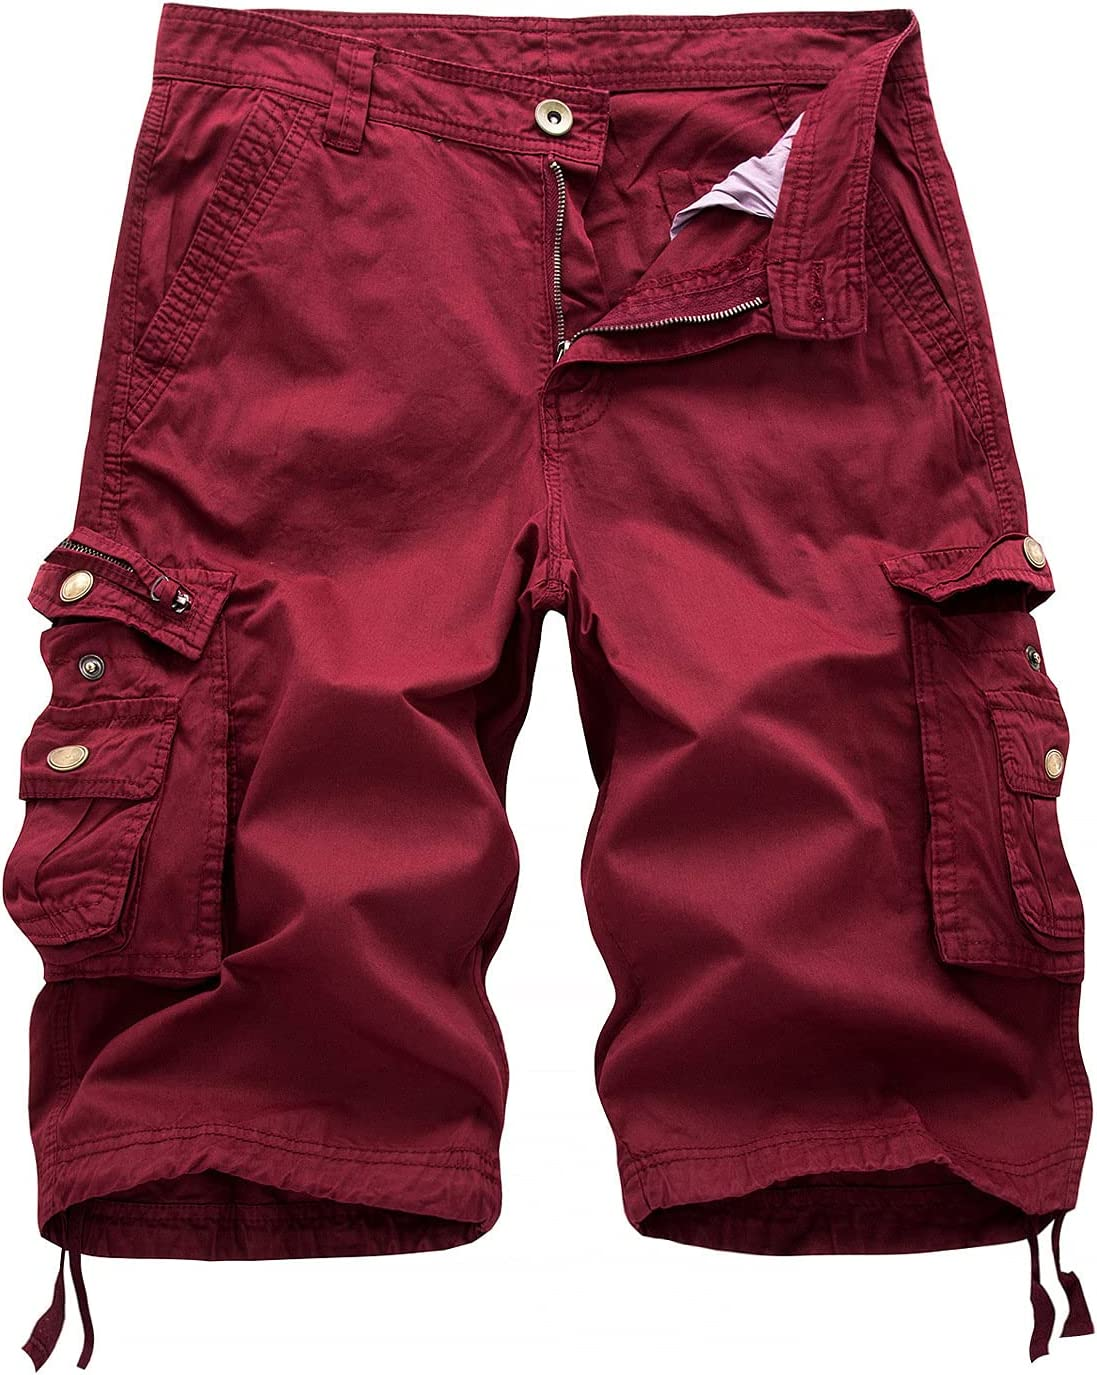 Outdoor Twill Cargo Shorts for Men Casual Summer Lightweight Outdoor Shorts Relaxed Fit Stretchy Multi-Pocket Shorts (Red,32)